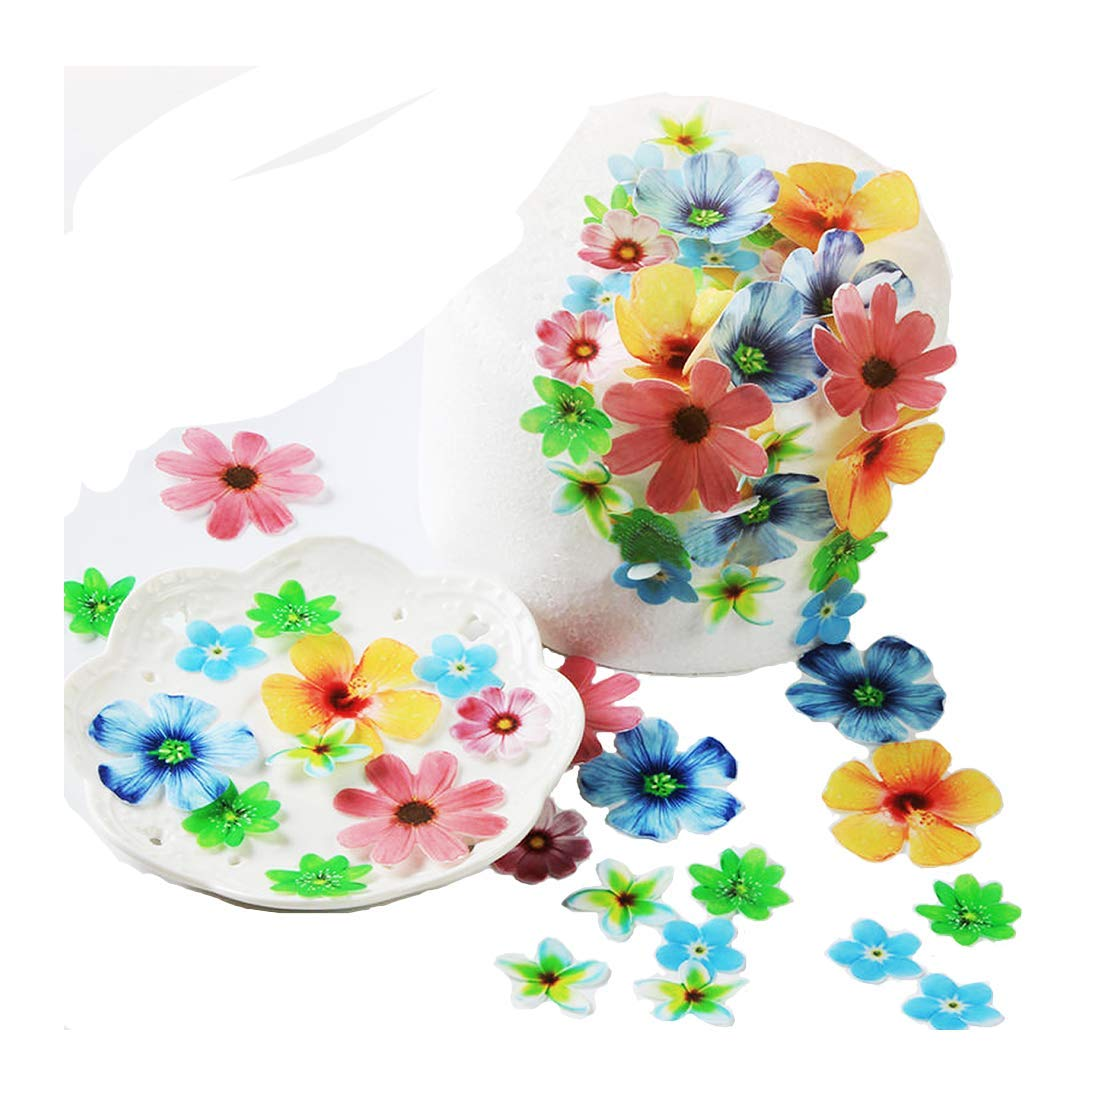 GEORLD Set of 48 Edible Flowers Cupcake Toppers Wedding Cake Birthday Party Food Decoration by GEORLD (Image #1)